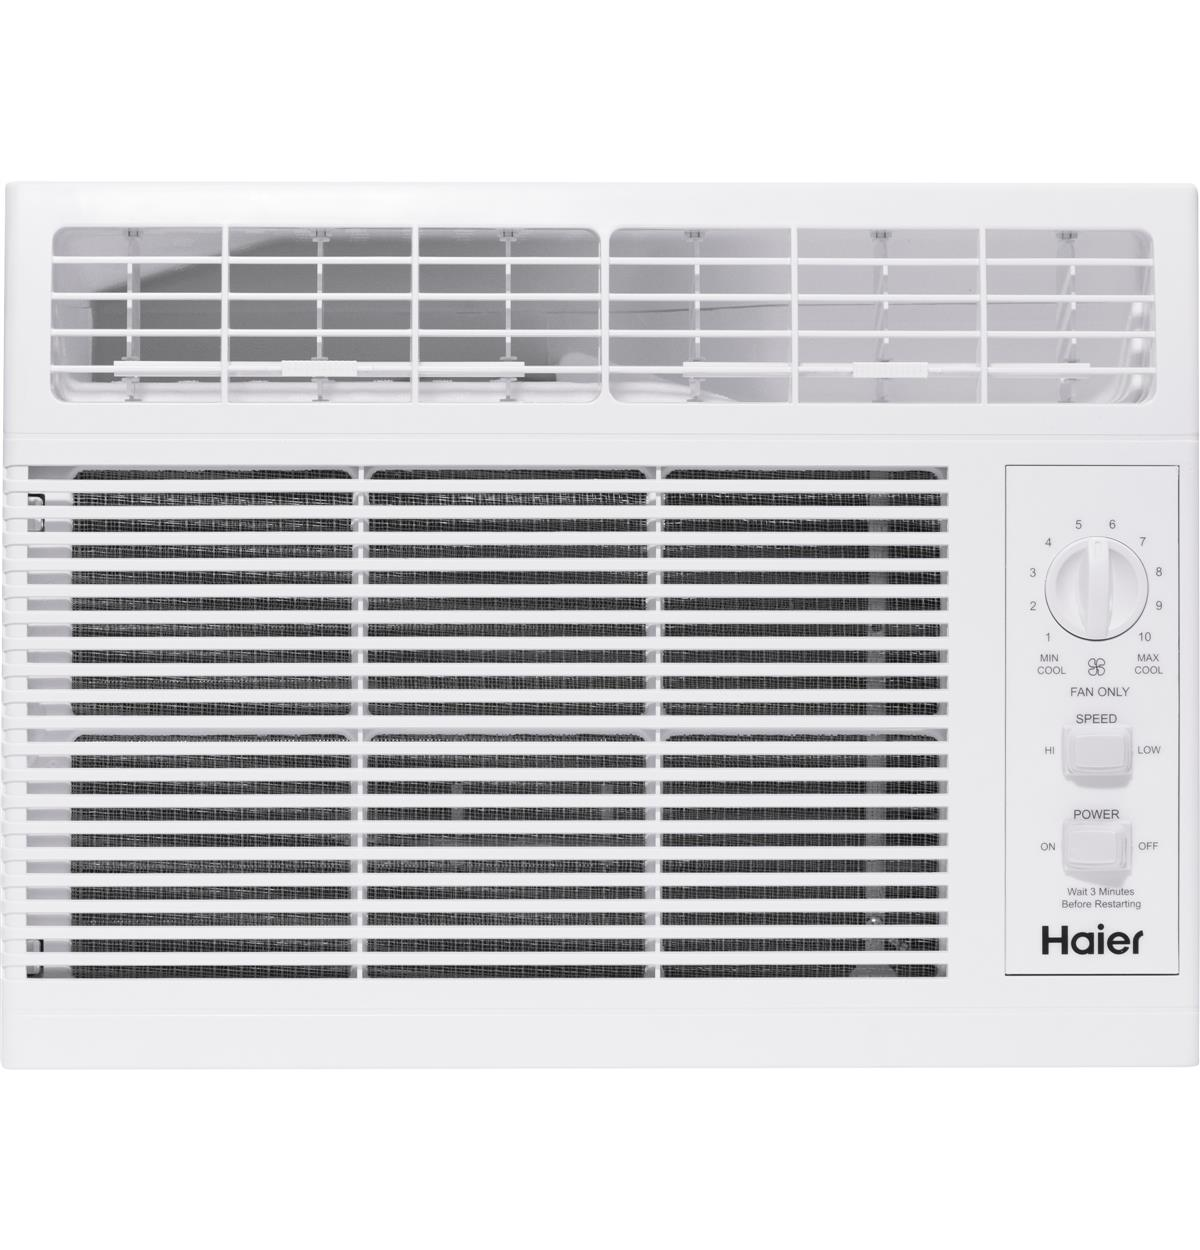 Haier Air Conditioners - Ductless, Portable Window Unit ... on